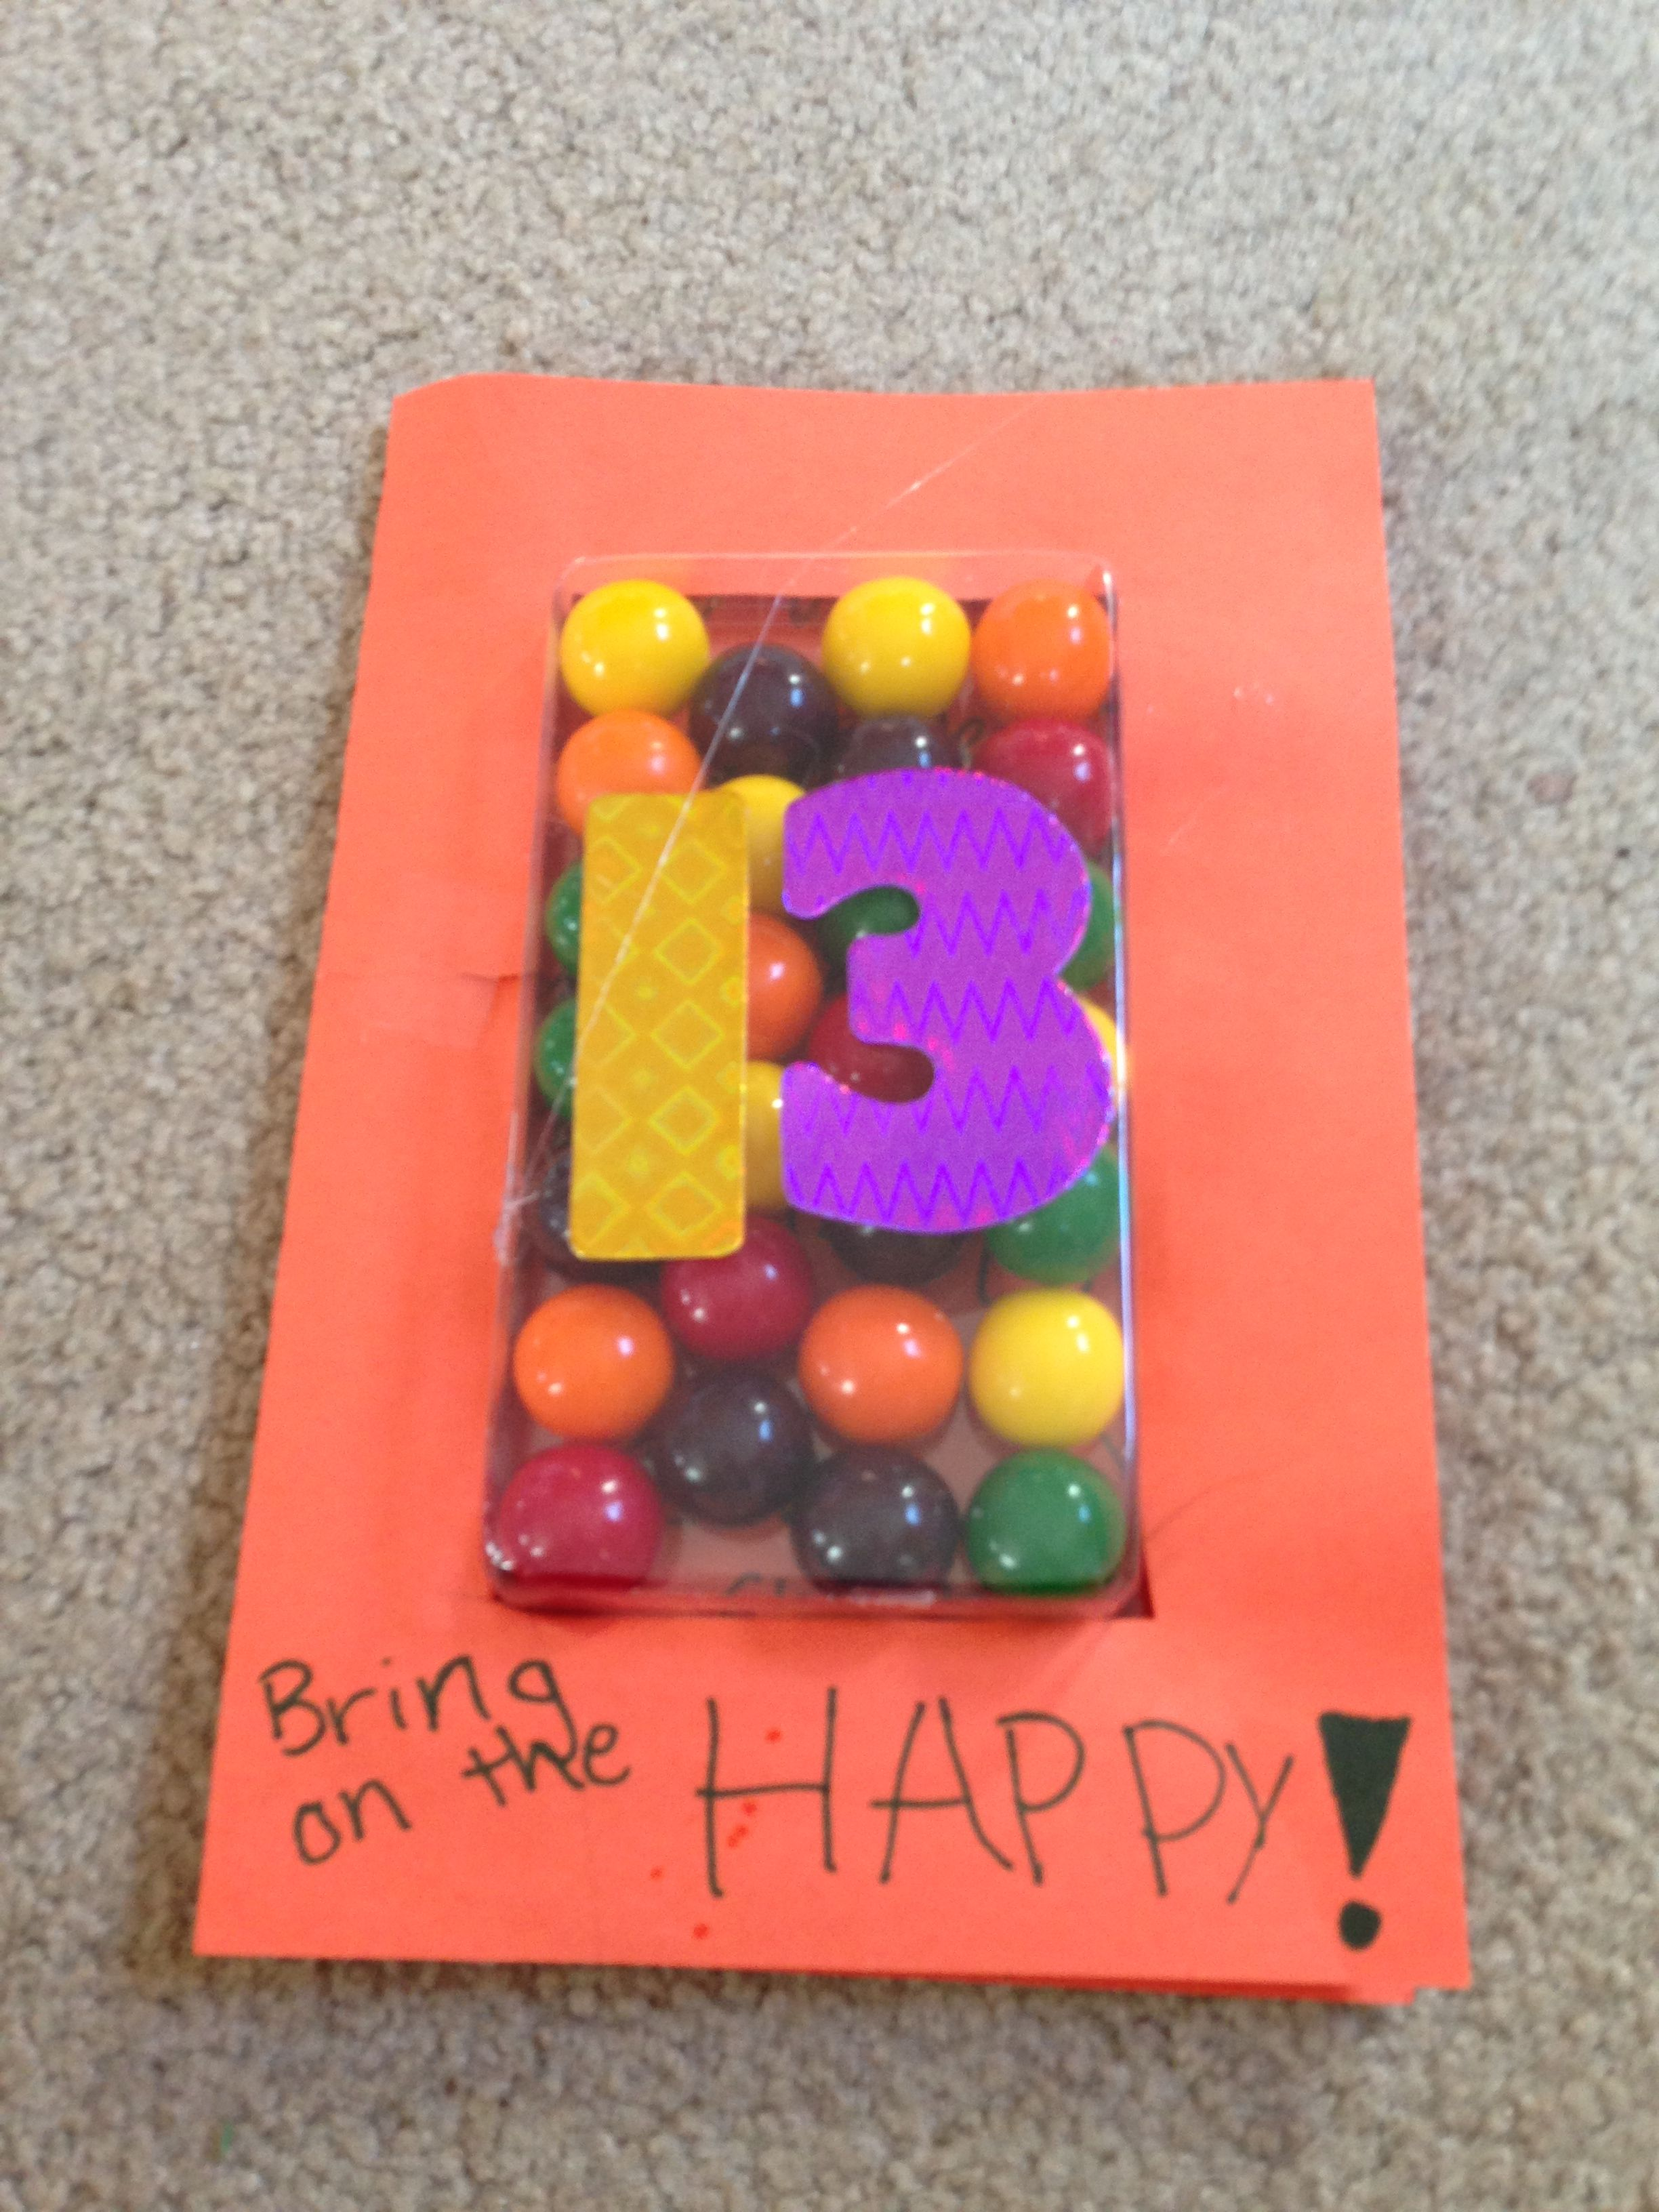 Birthday Card To My Now 13 Year Old Friend See Next Pin For Inside Of